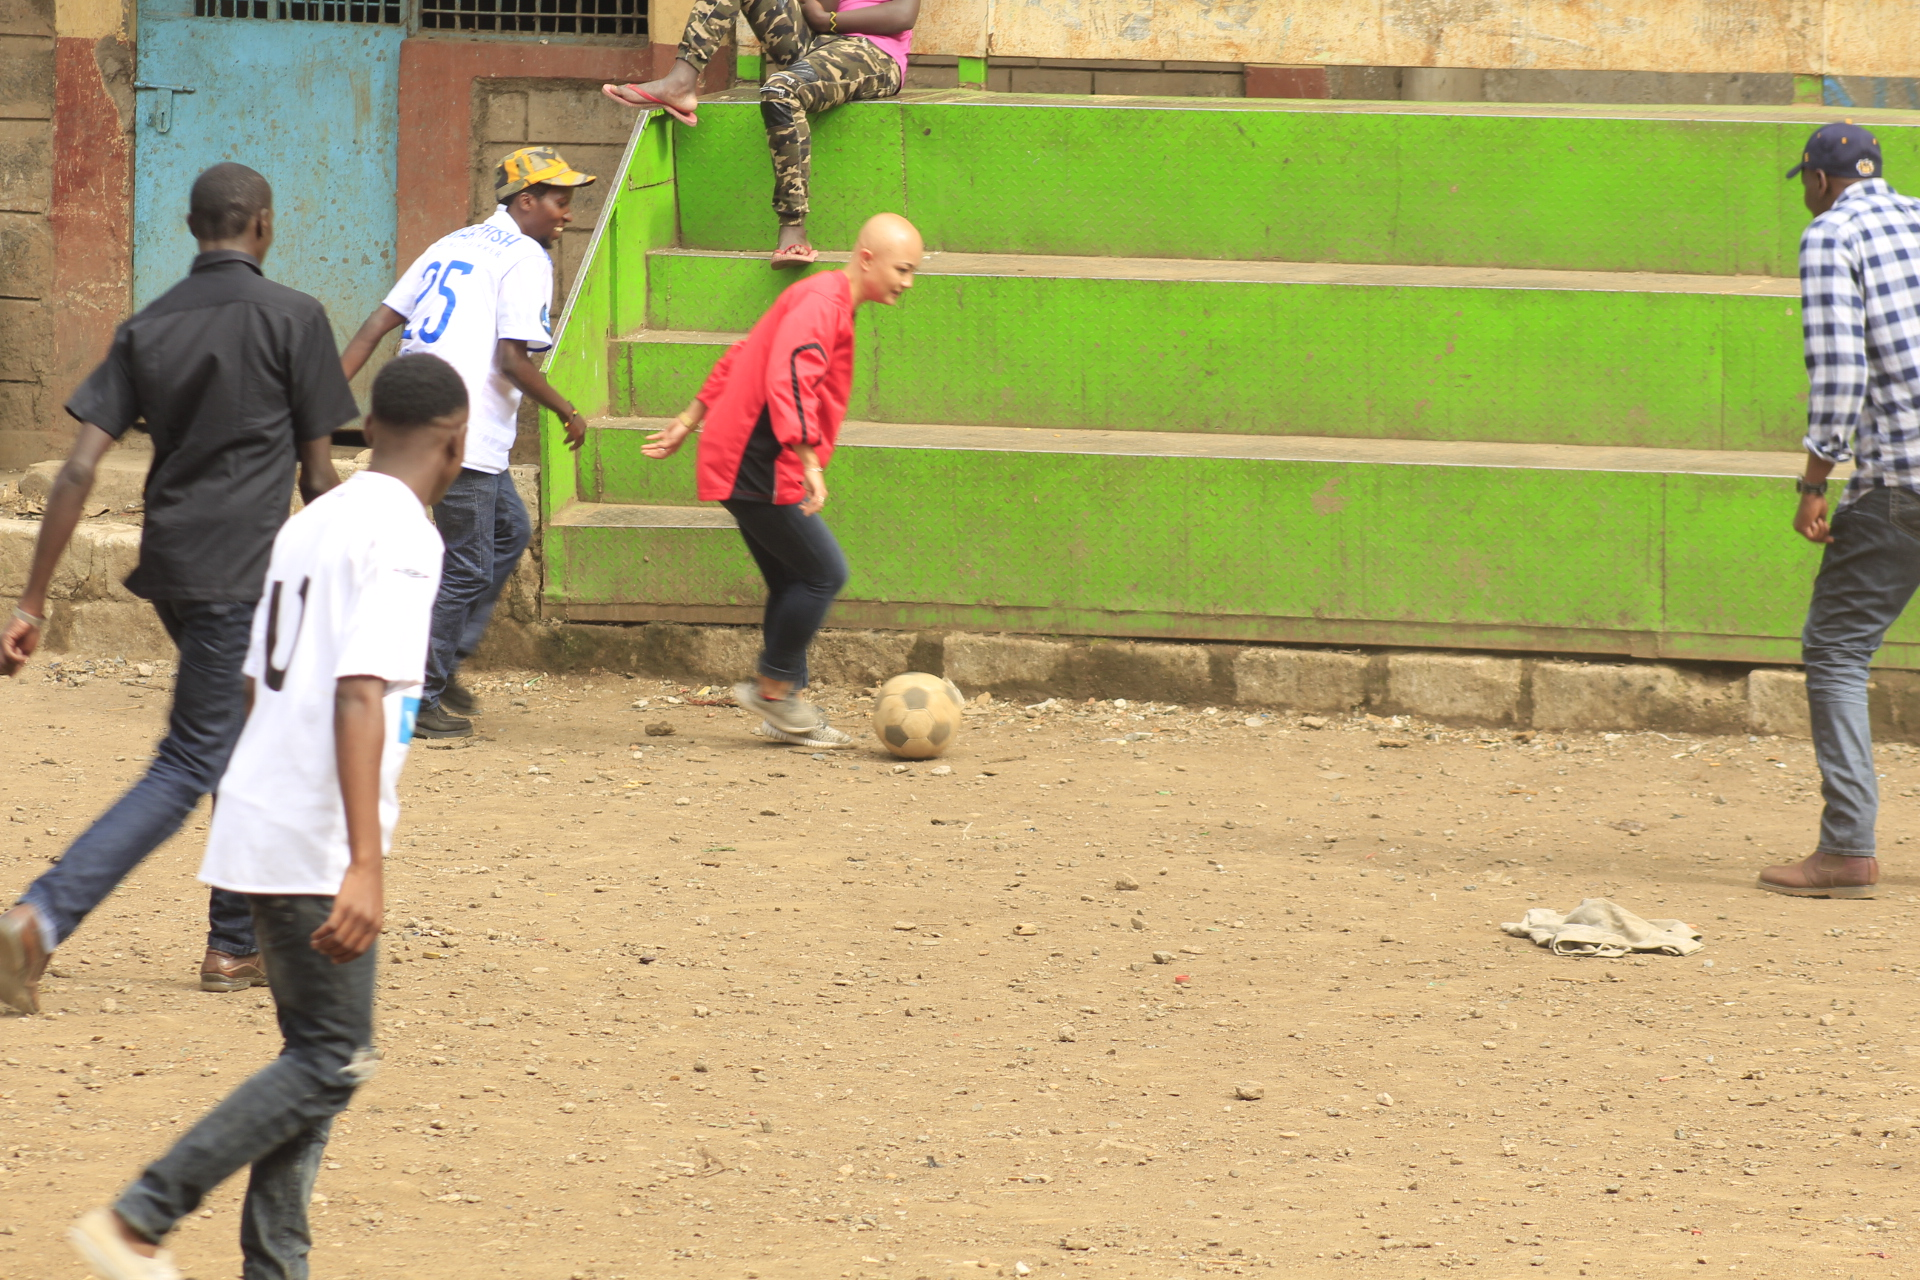 A ten-minute match at Mathare soccer stadium(previously grabbed land) in Mathare informal settlement, Nairobi.